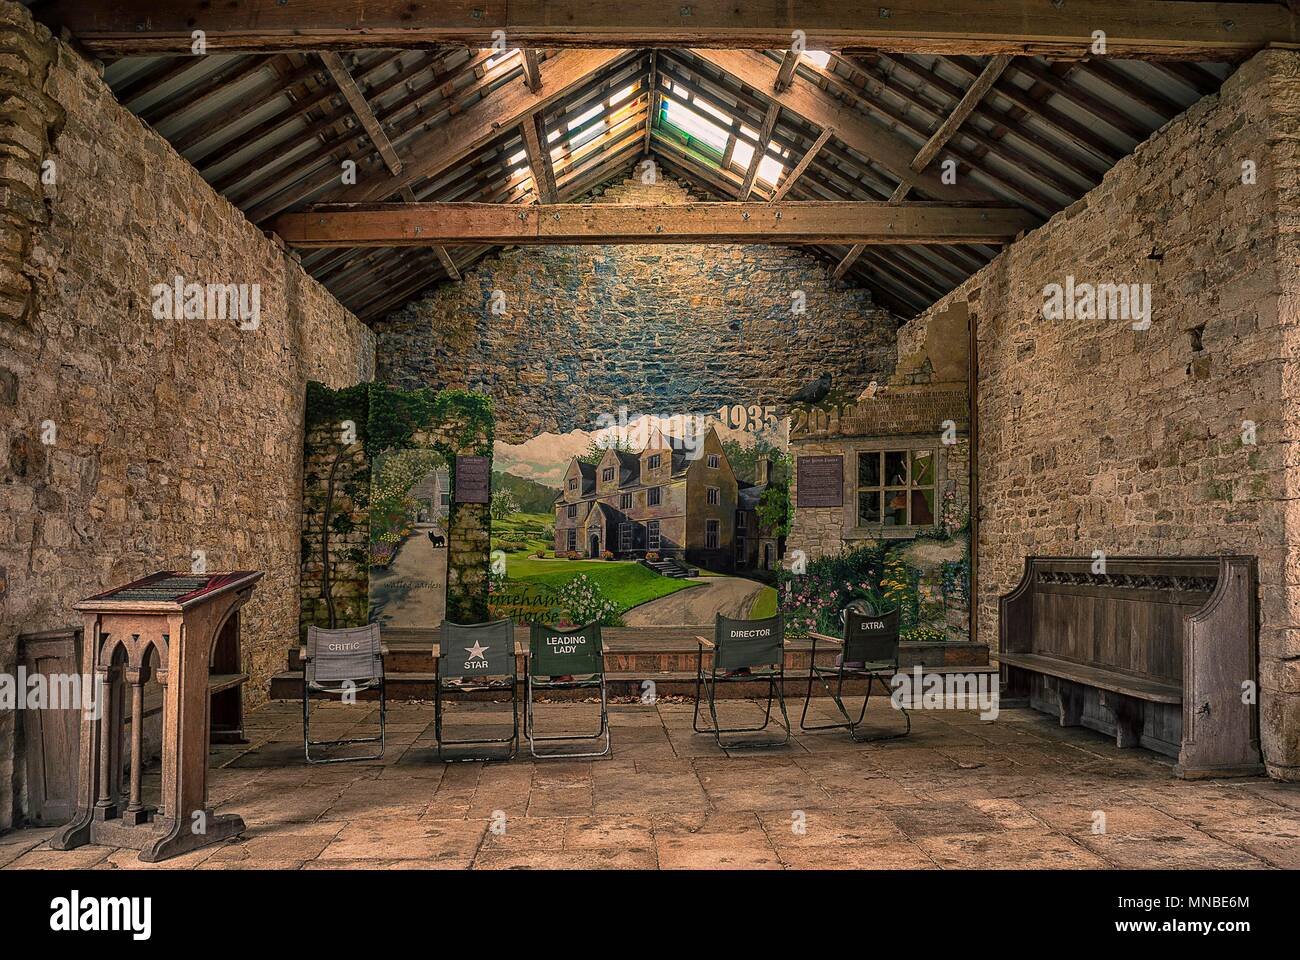 The interior of a barn in the ghost village of Tyneham in Dorset, UK - Stock Image